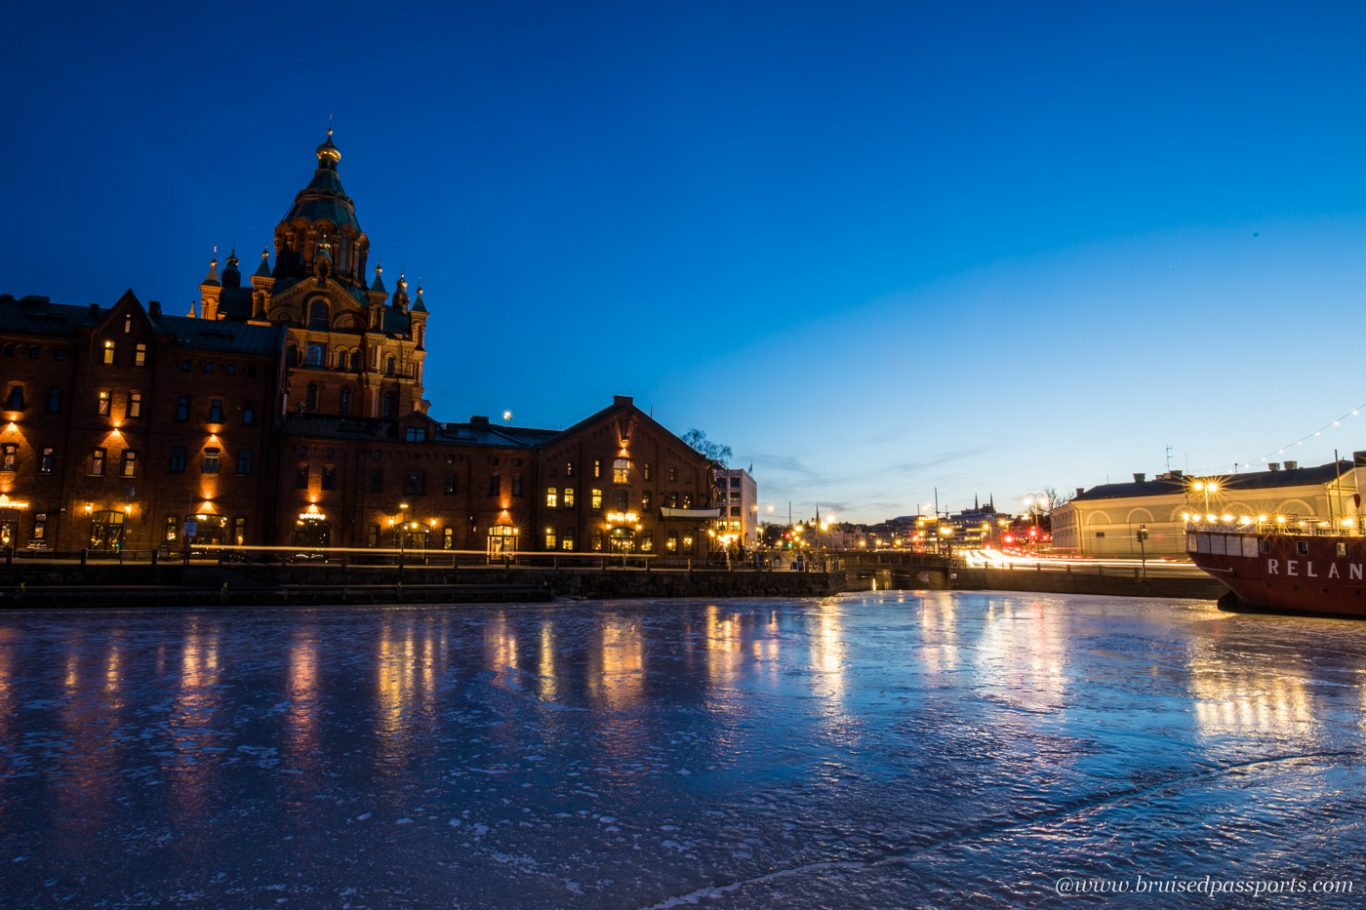 Sunset in Helsinki by Upenski cathedral